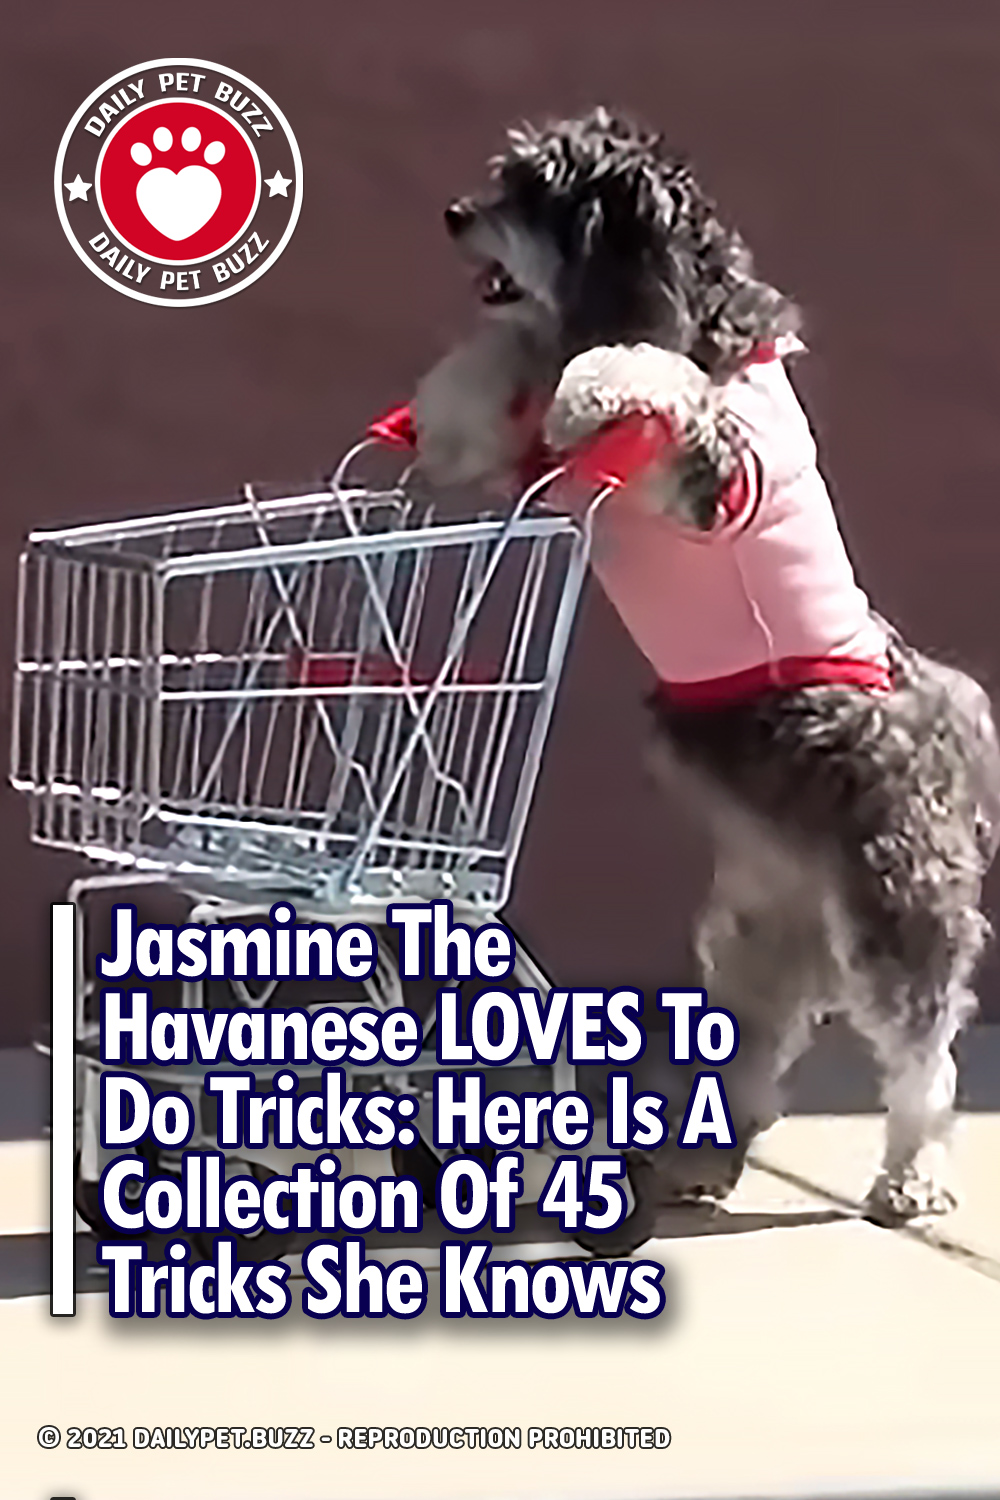 Jasmine The Havanese LOVES To Do Tricks: Here Is A Collection Of 45 Tricks She Knows